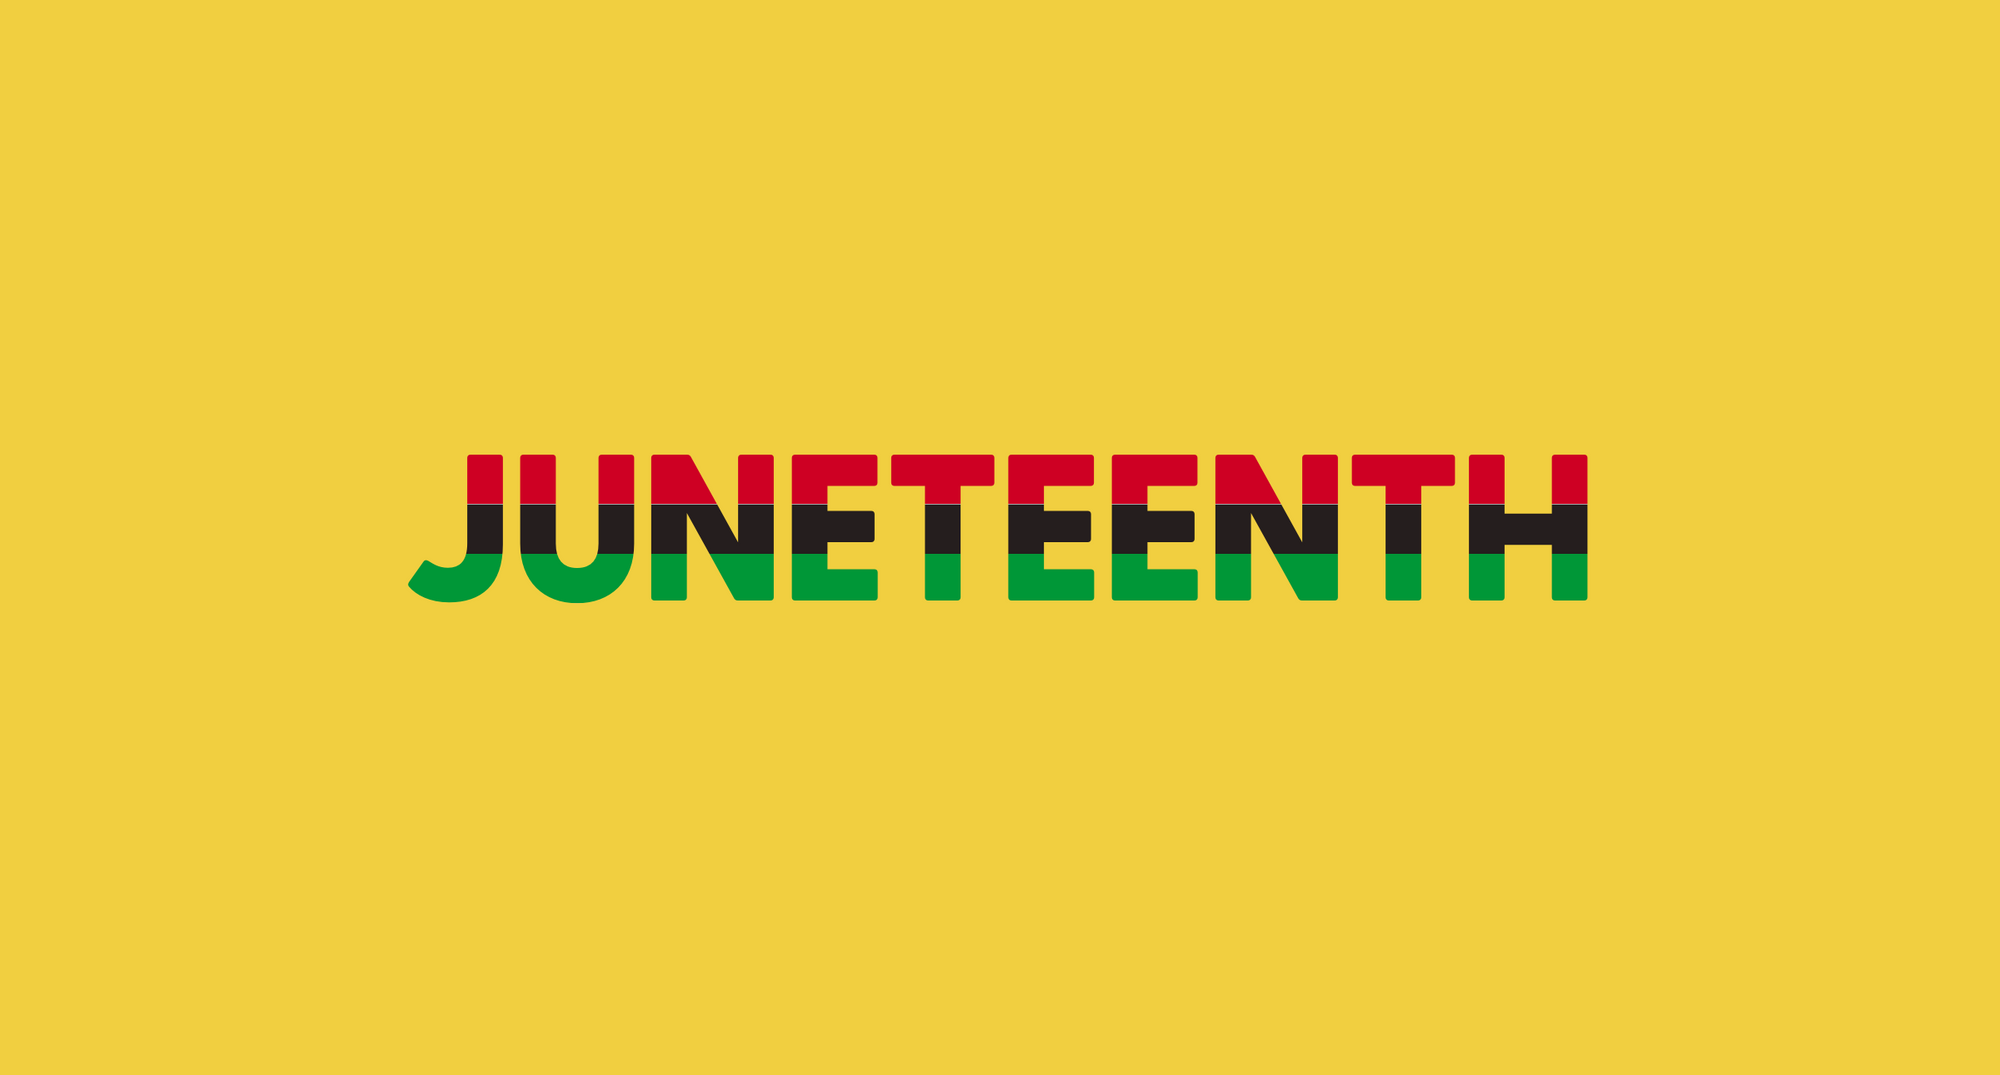 current-to-honor-juneteenth-with-company-holiday